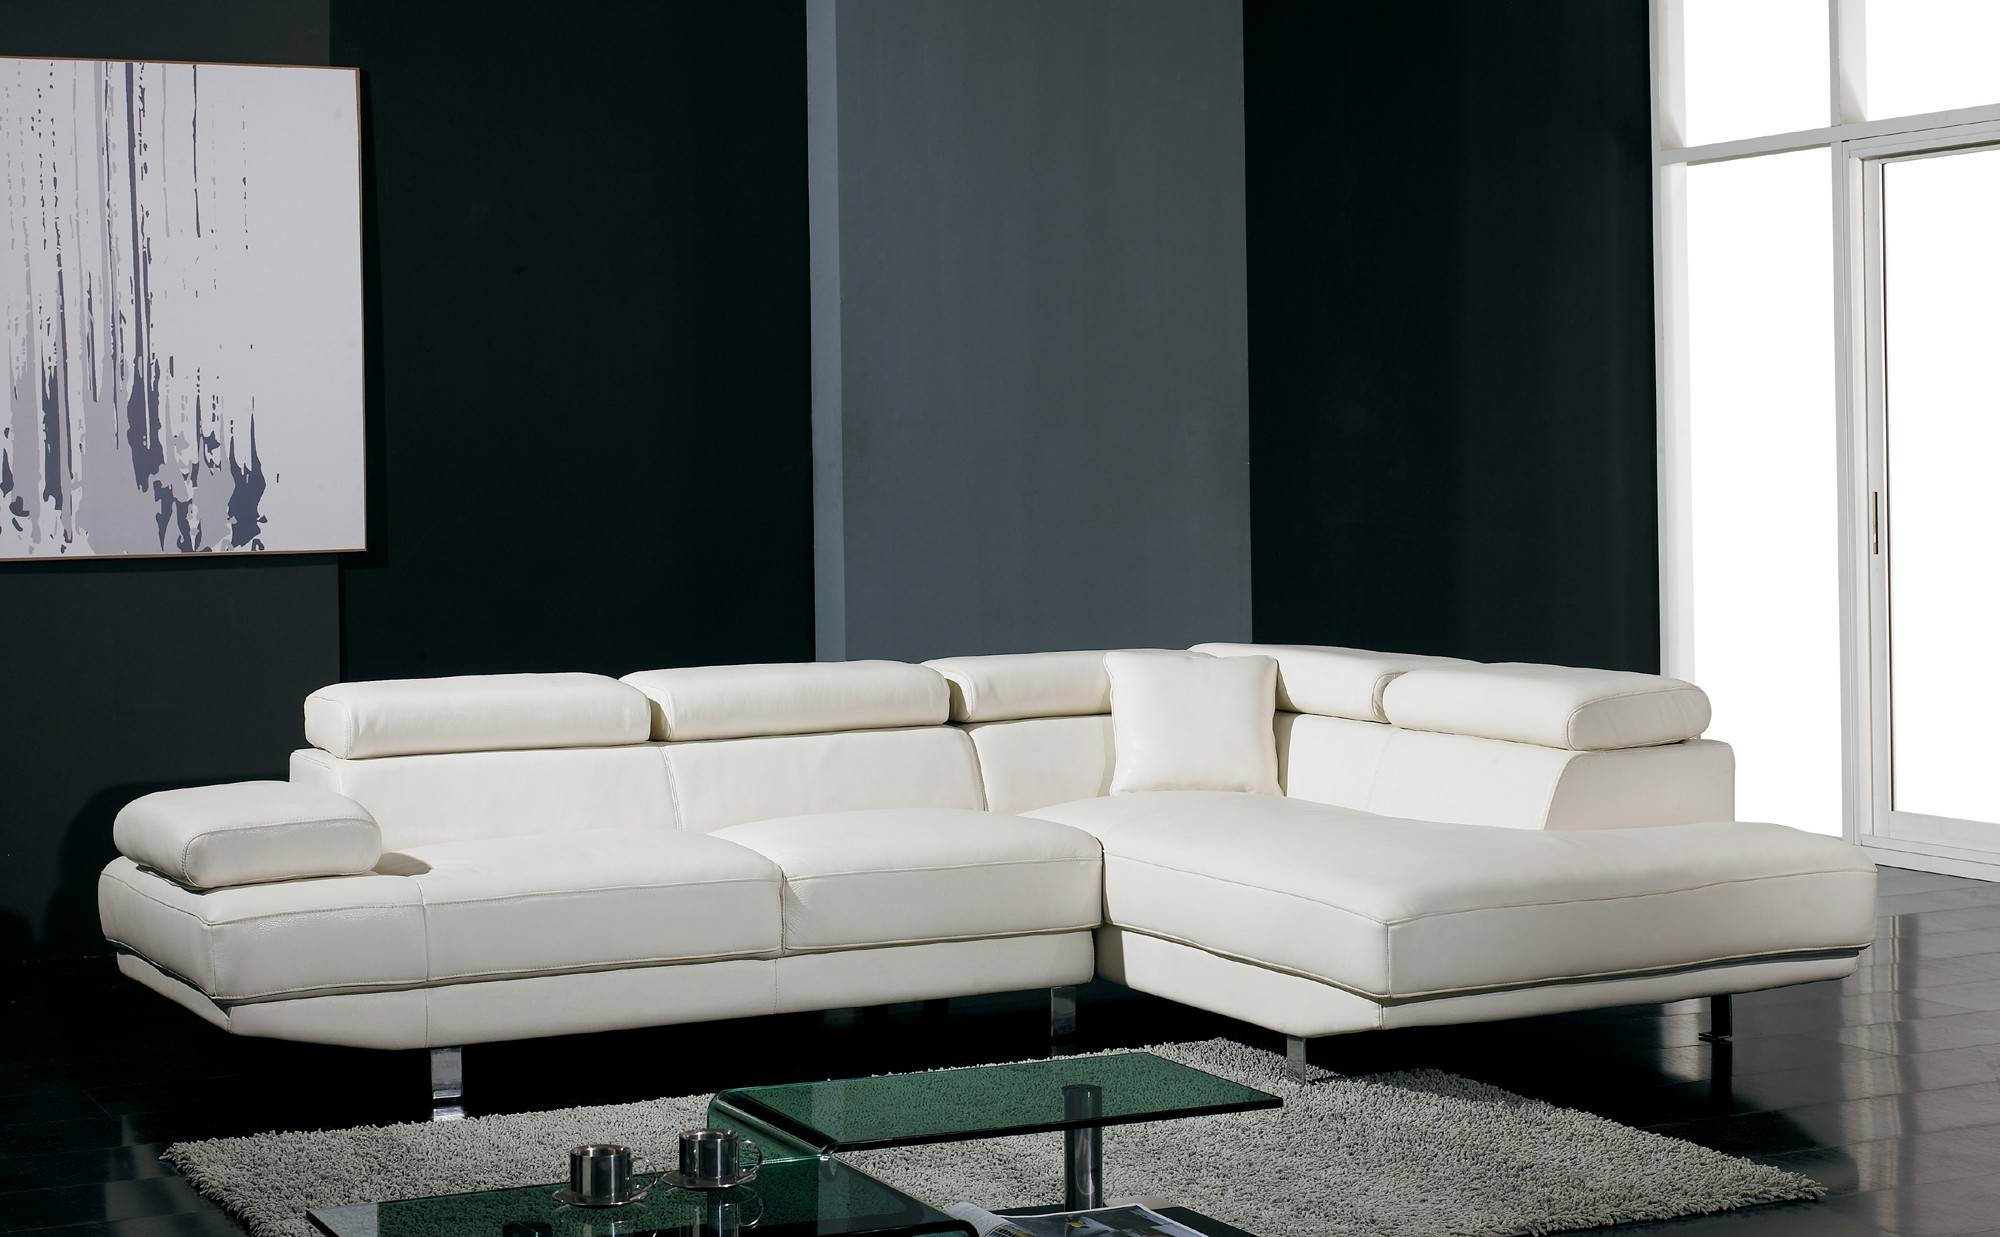 Latest Trend Of Modern Sectional Sofas Los Angeles 91 About intended for Champion Sectional Sofa (Image 13 of 30)